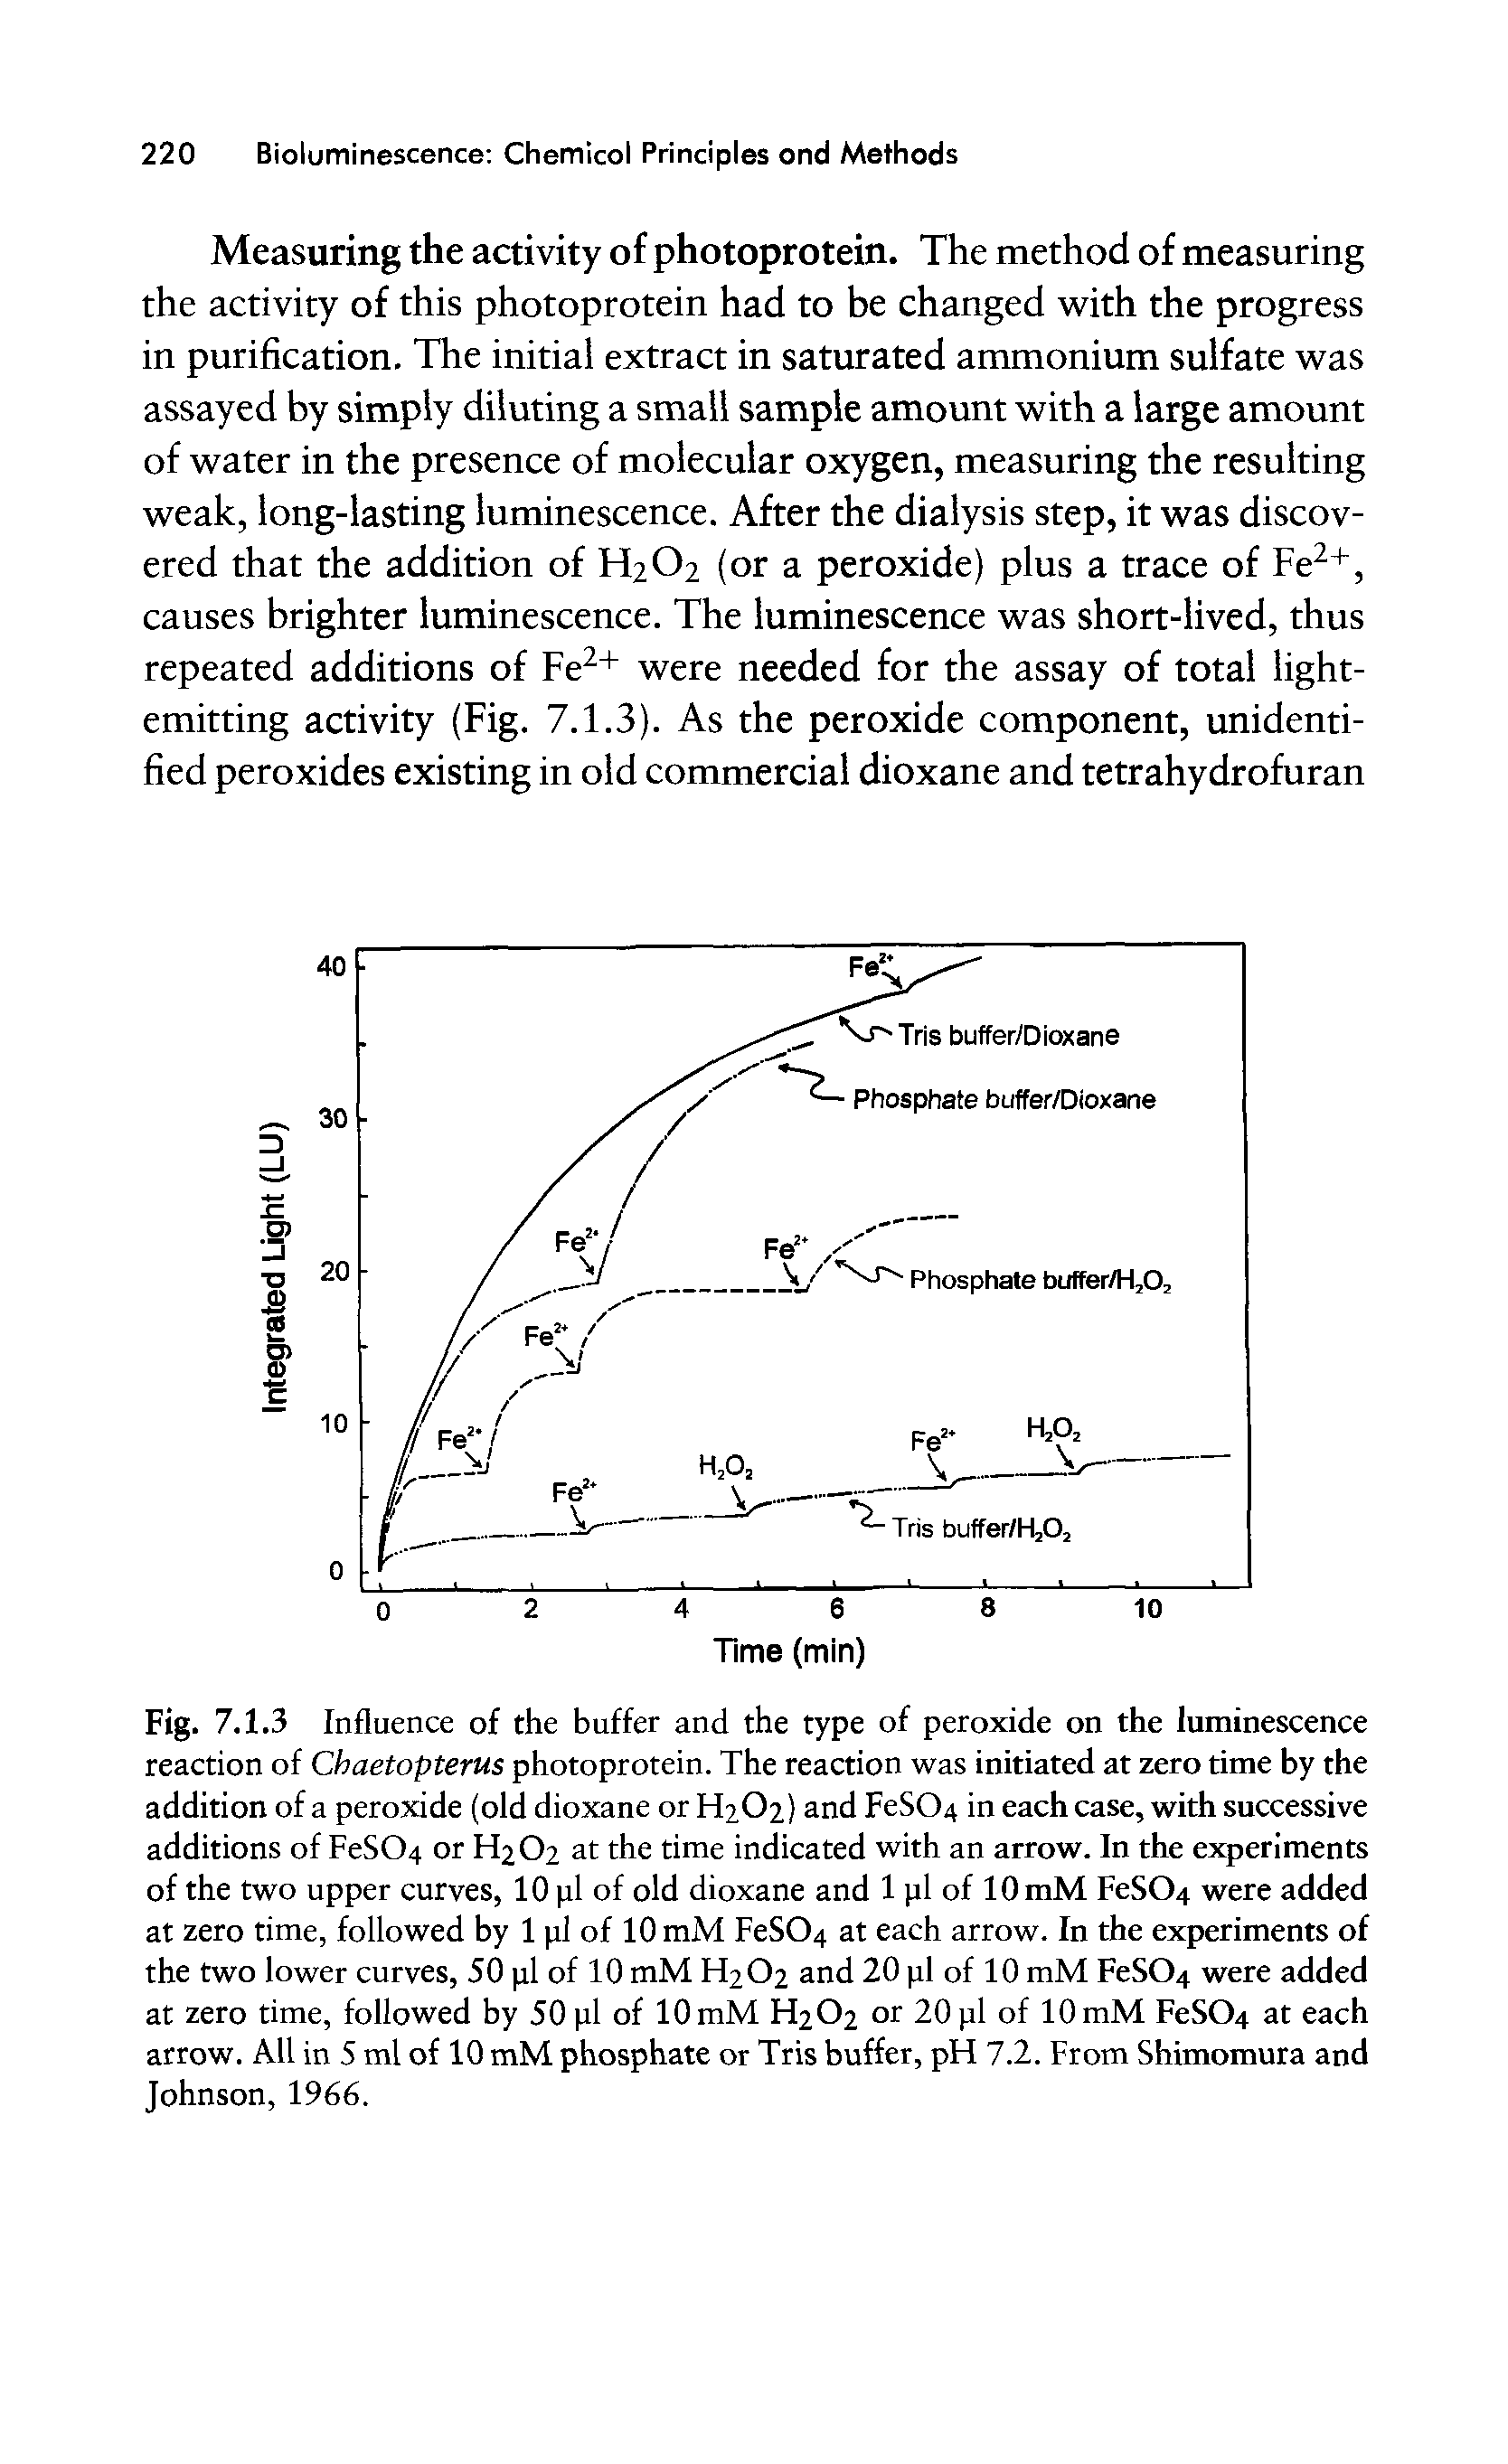 "Fig. 7.1.3 Influence of the buffer and the type of peroxide on the <a href=""/info/luminescent_reaction"">luminescence reaction</a> of Chaetopterus photoprotein. The reaction was initiated at zero time by the addition of a peroxide (old dioxane or H2O2) and FeSC>4 in each case, with successive additions of FeSC>4 or H2O2 at the time <a href=""/info/with_ph_indicators"">indicated with</a> an arrow. In the experiments of the two upper curves, 10 pi of old dioxane and 1 pi of lOmM FeSC>4 were added at zero time, followed by 1 pi of 10 mM FeSC>4 at each arrow. In the experiments of the two lower curves, 50 pi of 10 mM H2O2 and 20 pi of 10 mM FeSC>4 were added at zero time, followed by 50 pi of 10 mM H2O2 or 20 pi of 10 mM FeSC>4 at each arrow. All in 5 ml of 10 mM phosphate or <a href=""/info/bis_tris_buffer"">Tris buffer</a>, pH 7.2. From Shimomura and Johnson, 1966."